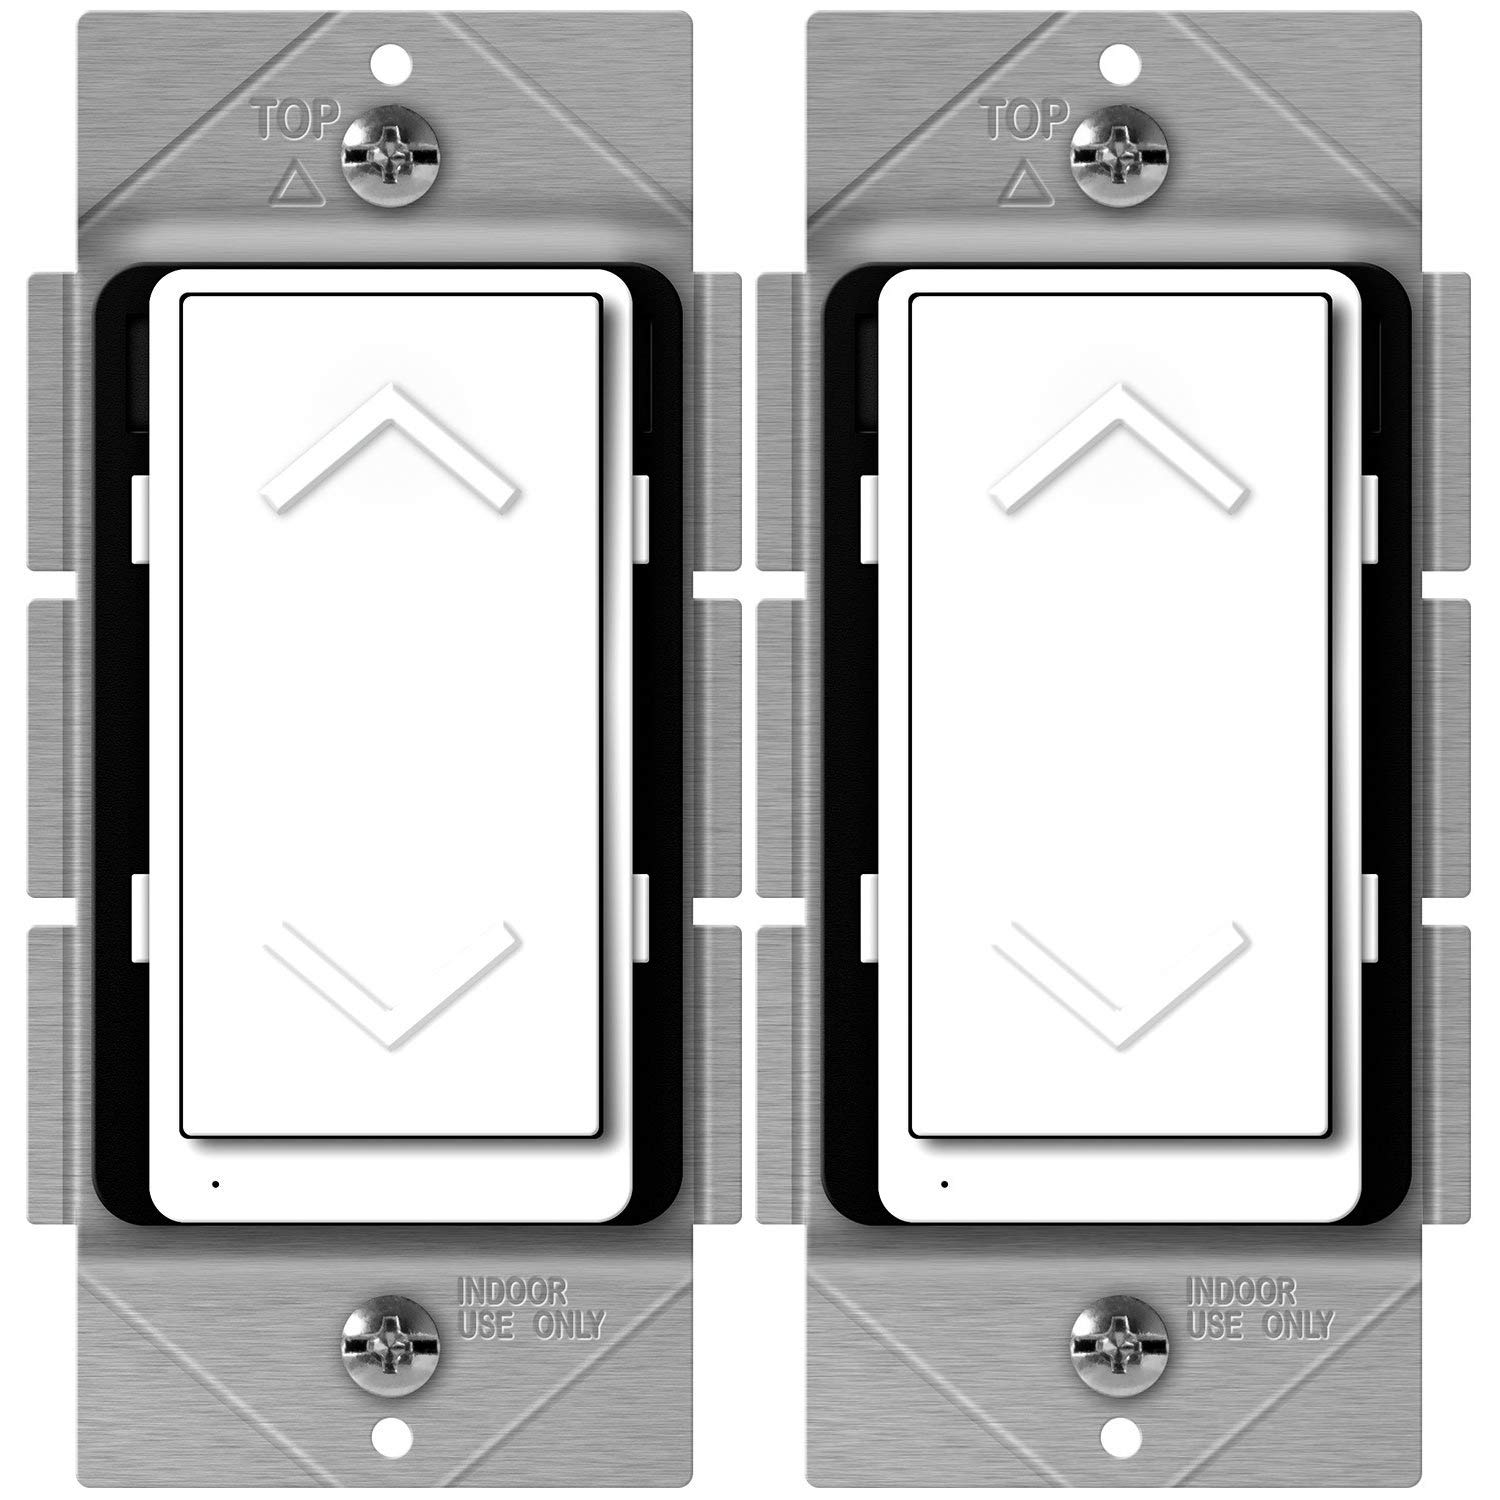 ENERWAVE Z-Wave Plus Dimmer, Smart Dimmer Switch for Z-Wave Home Automation, Z-Wave Dimmer Switch with Smart Meter Energy Monitor, Neutral Wire Required, Compatible with Alexa, ZW500DM-PLUS, 2-Pack